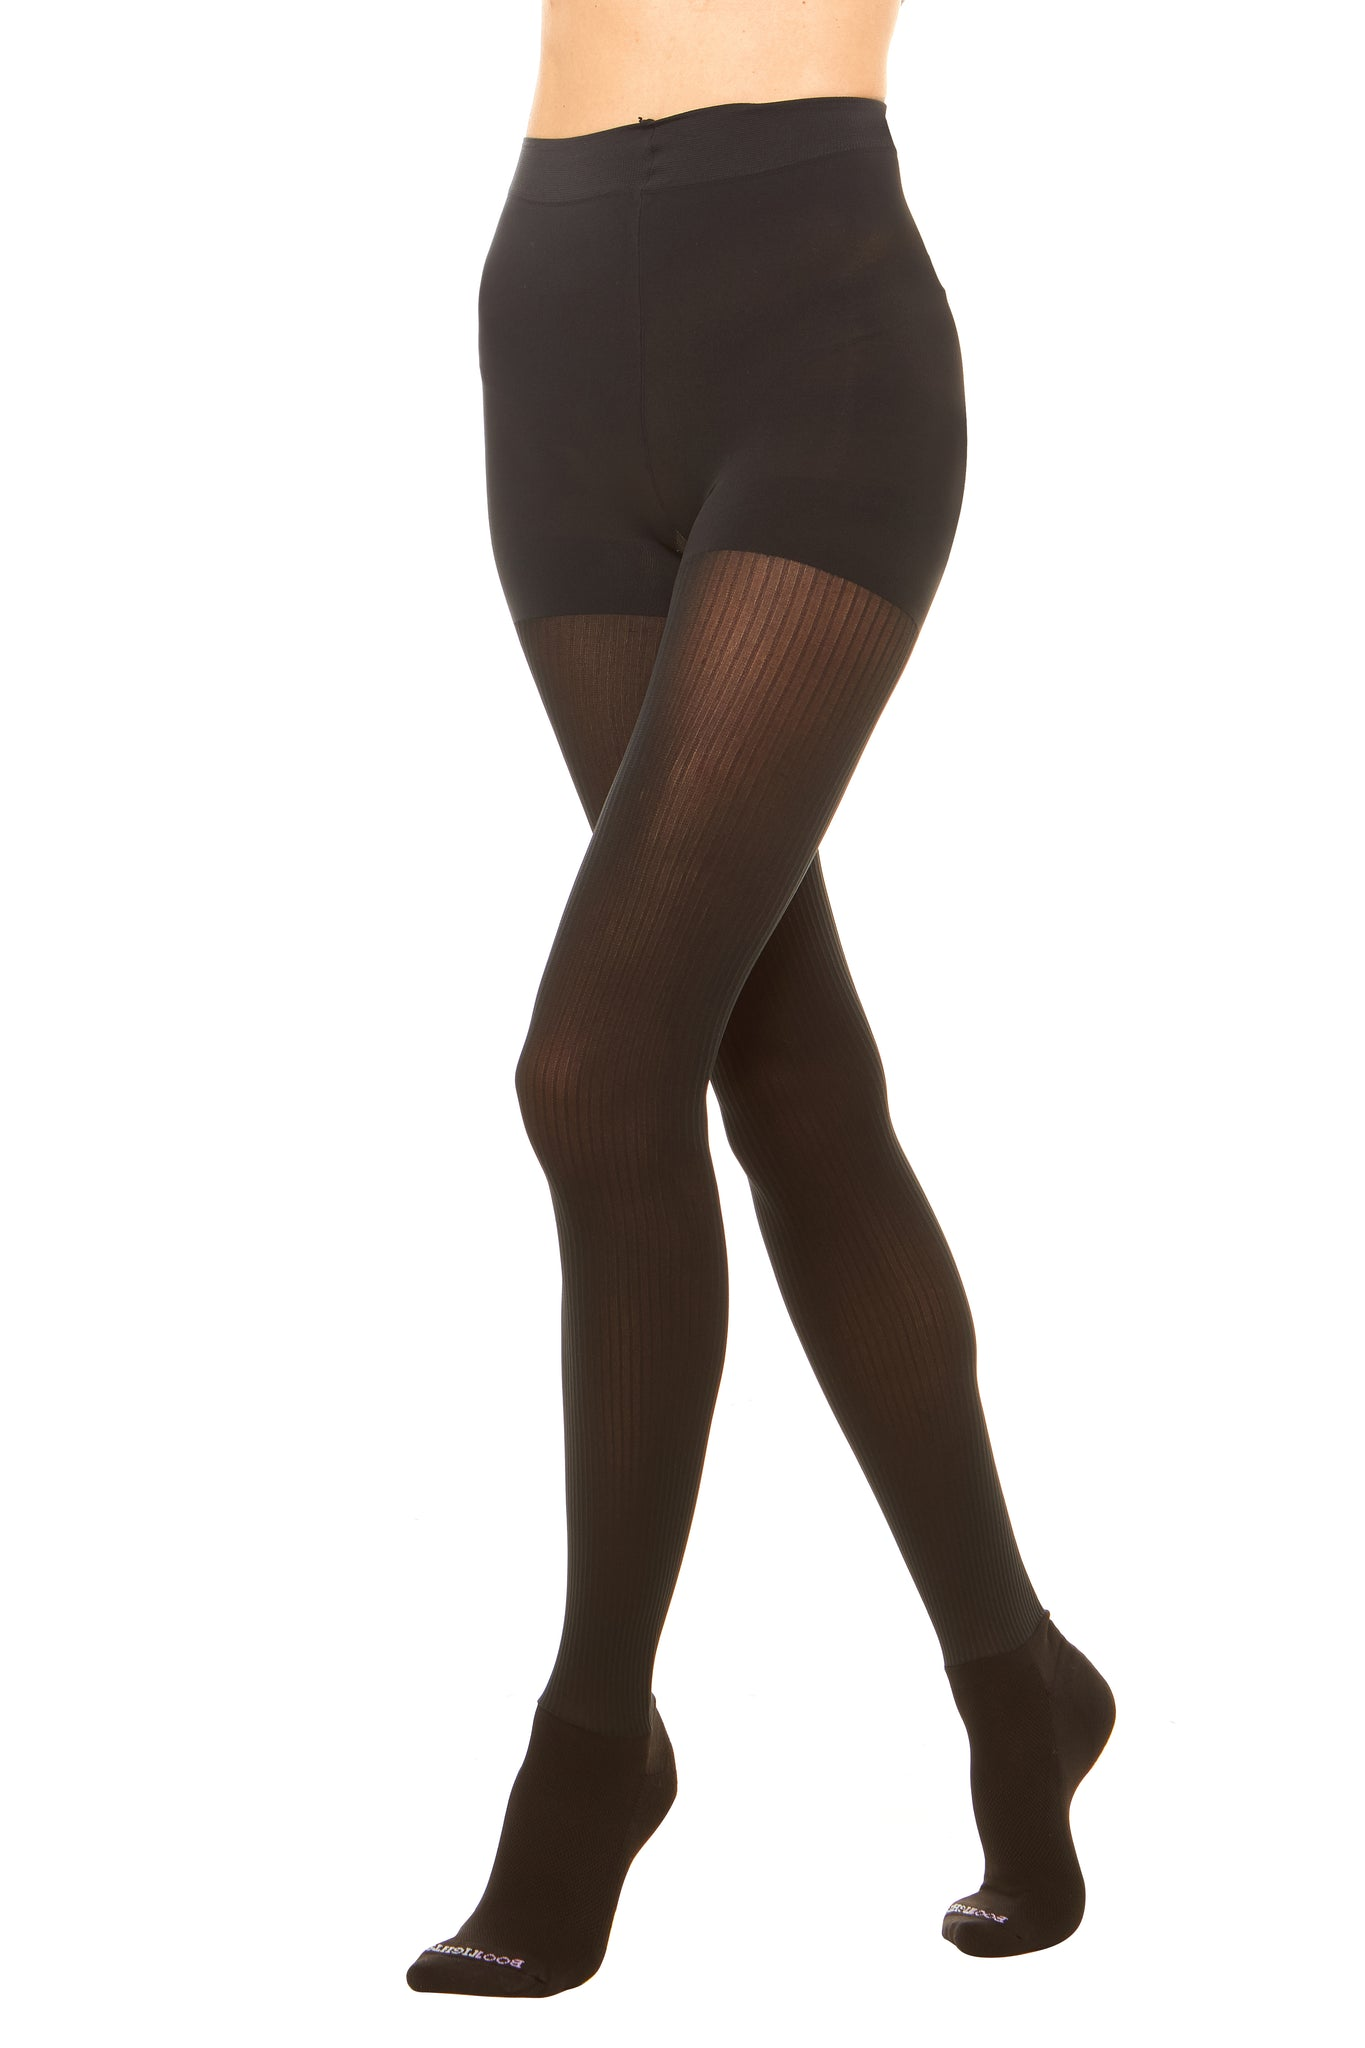 d7d675b18b2 Premium semi opaque women s tights in a sheer rib pattern with attached  performance athletic socks and